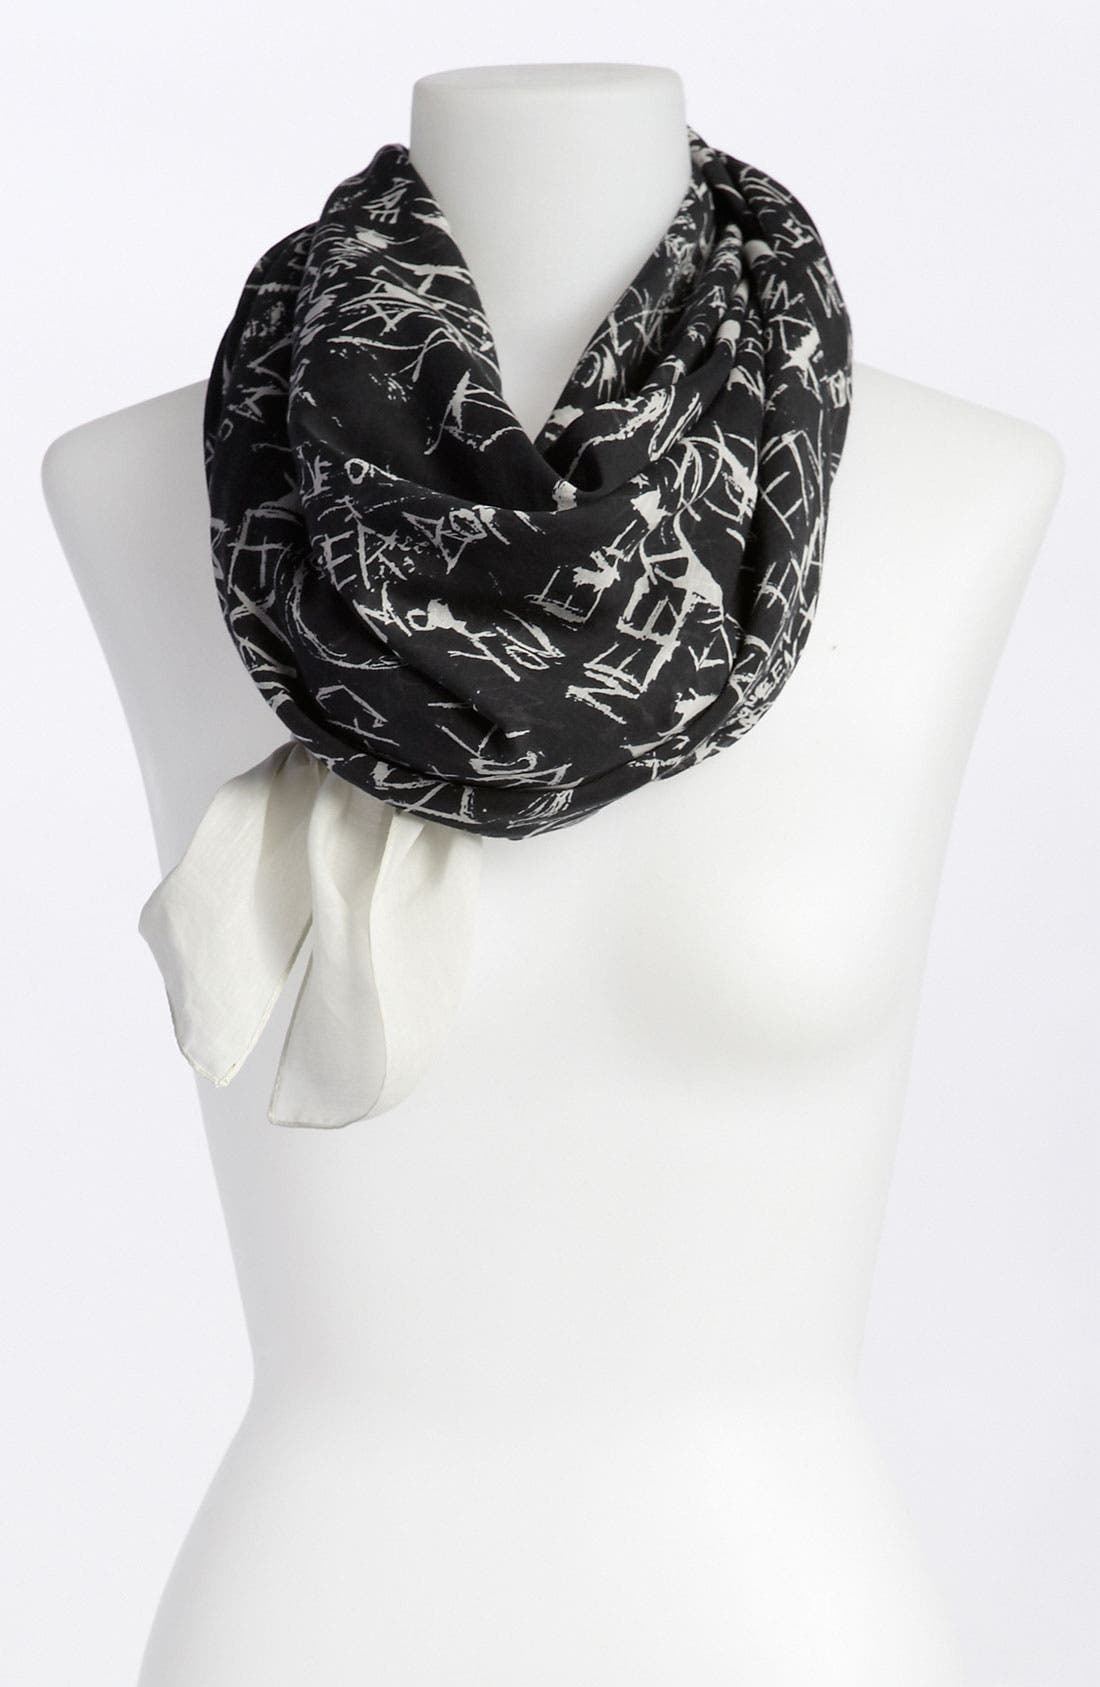 Alternate Image 1 Selected - McQ by Alexander McQueen 'Graffiti' Cotton & Silk Scarf